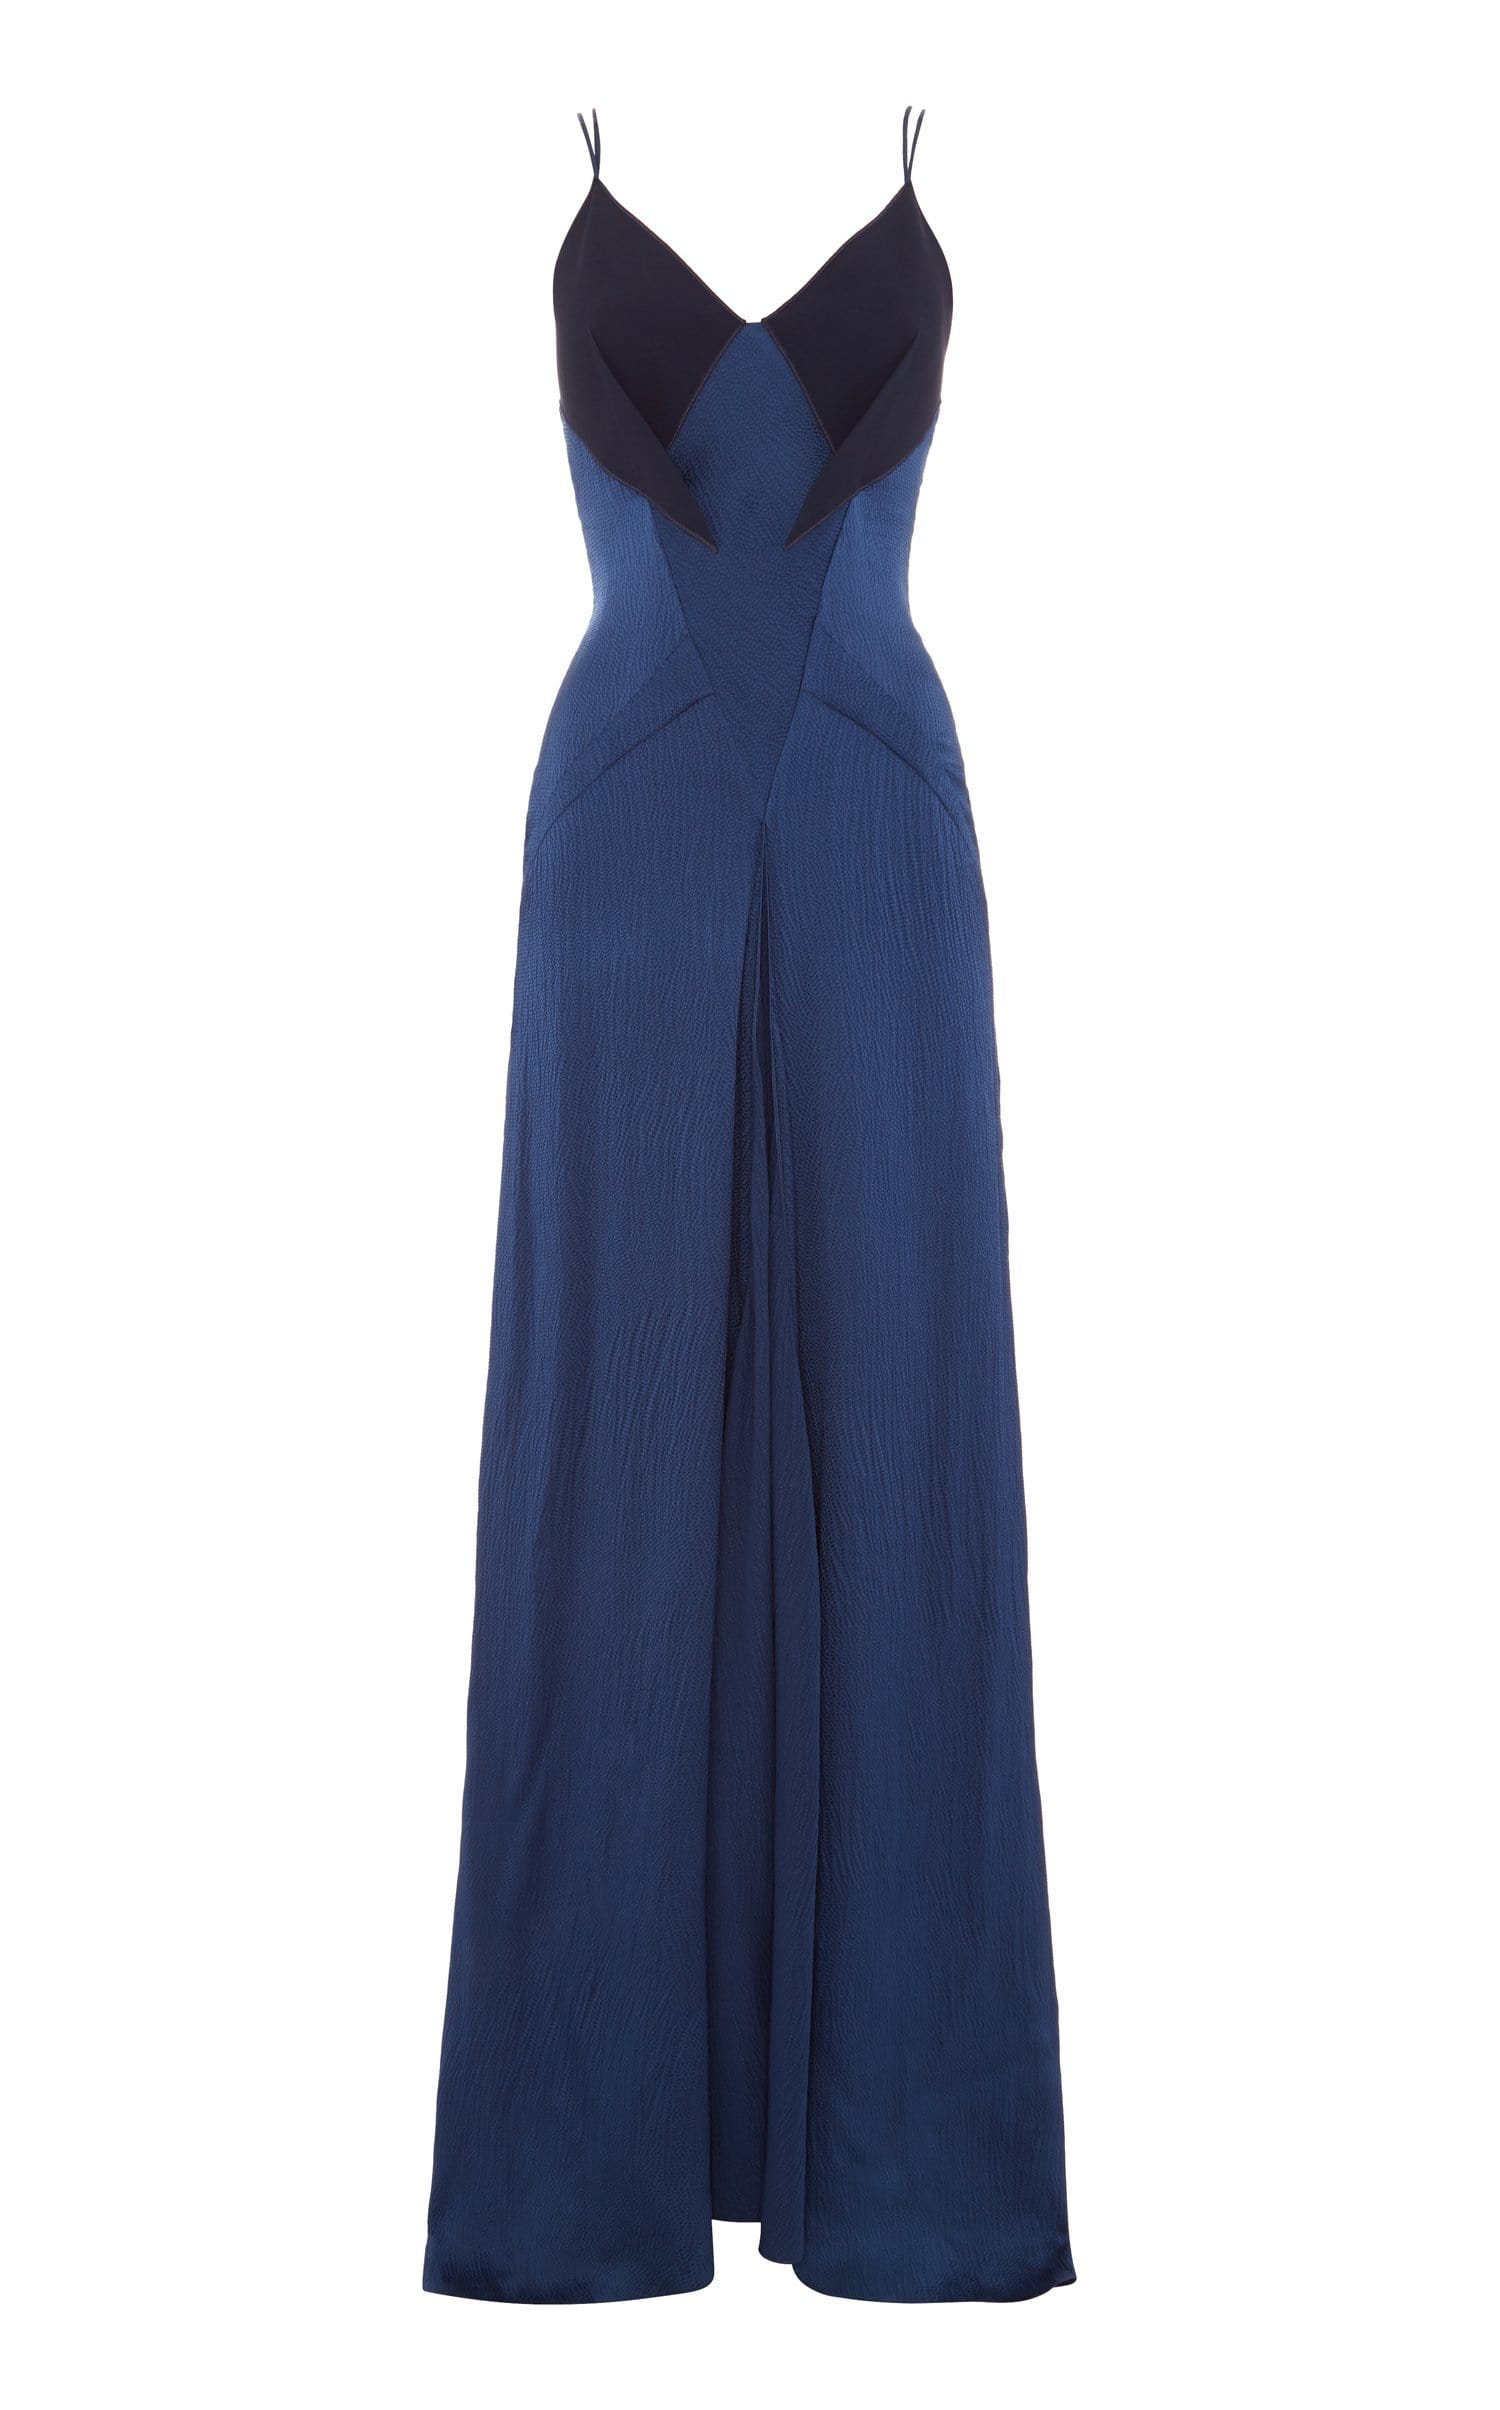 Revere Gown In Ultramarine/Navy from Roland Mouret